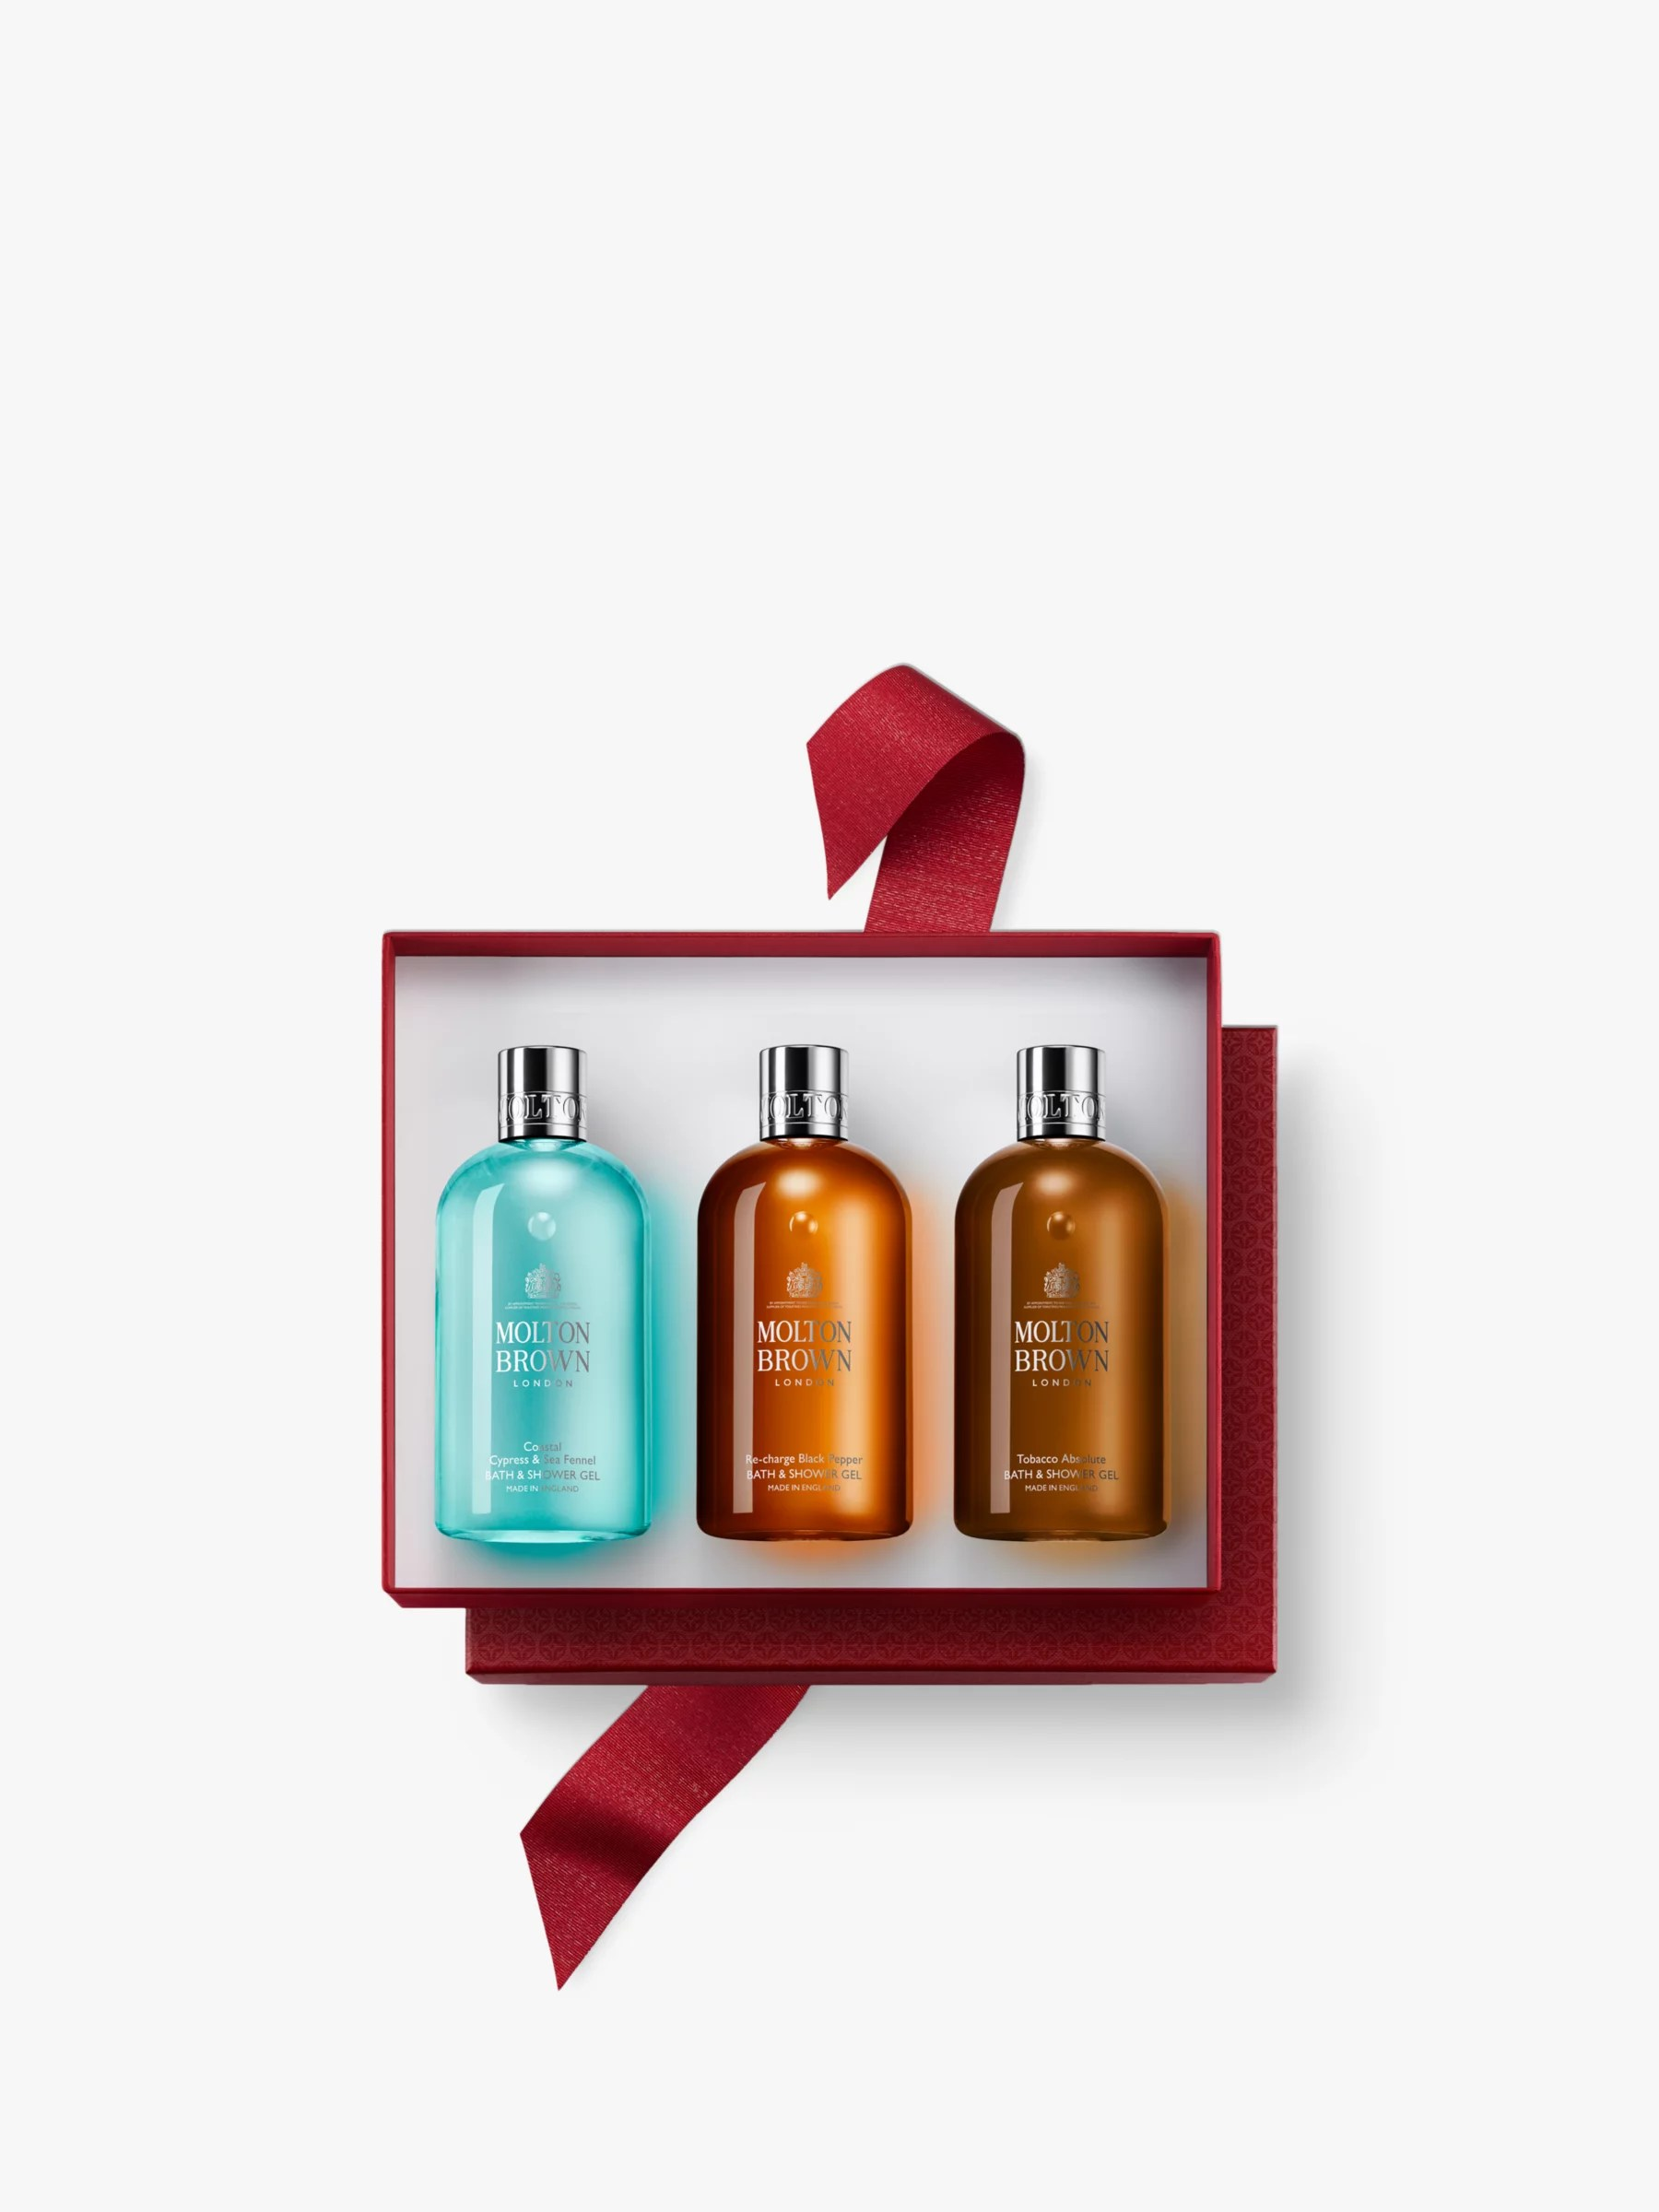 Gifts For Him Gifts For Men Gifts For Dad John Lewis